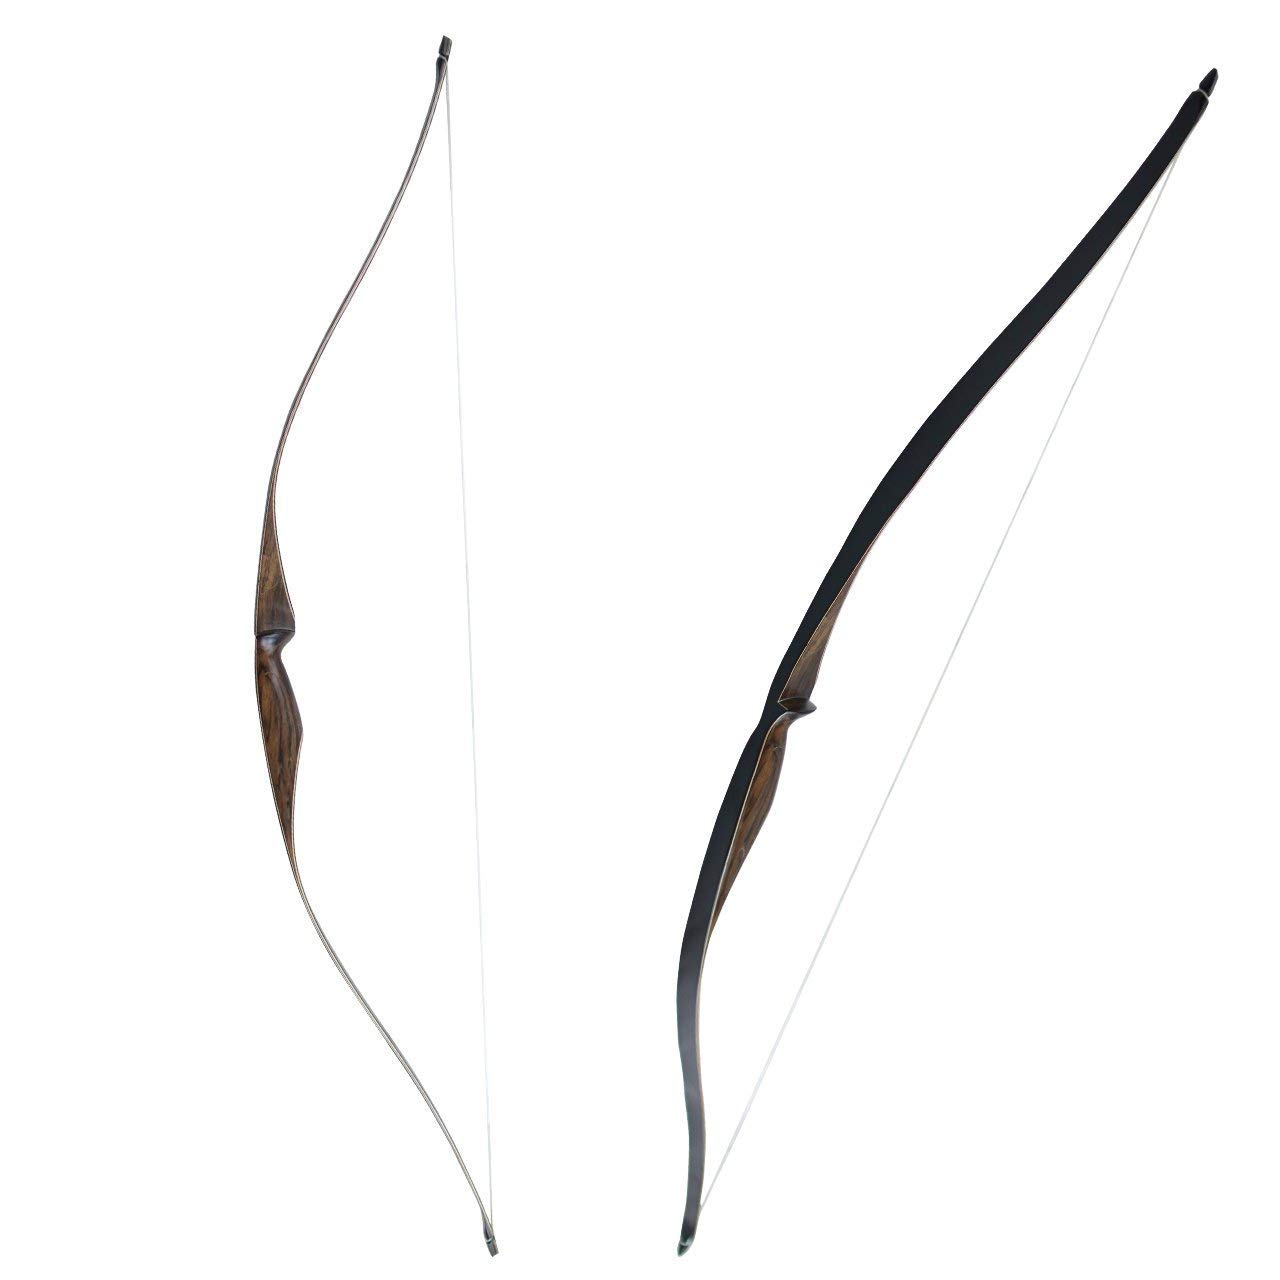 SinoArt Sparrow 54'' Traditional Long Bow 20 25 lbs Draw Weight One-Piece Longbow Recurve BowRight Hands Beginner Women Tenns (Right Hand 30 lbs)